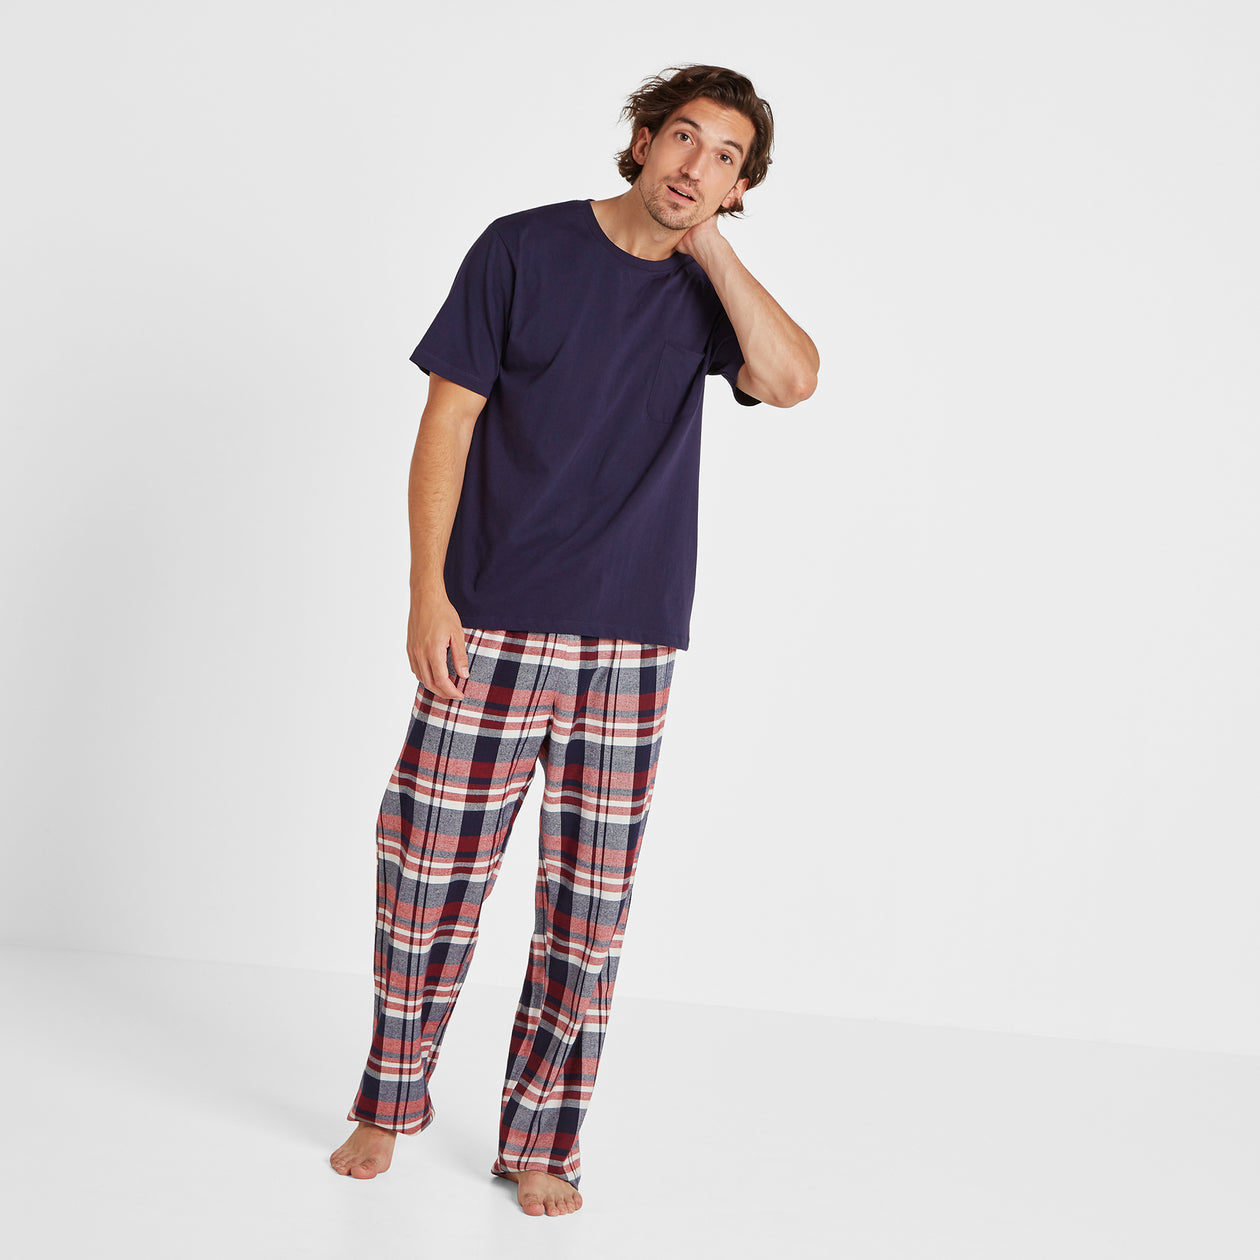 Slumber Mens Long Pyjamas - Navy/Chilli Check image 4